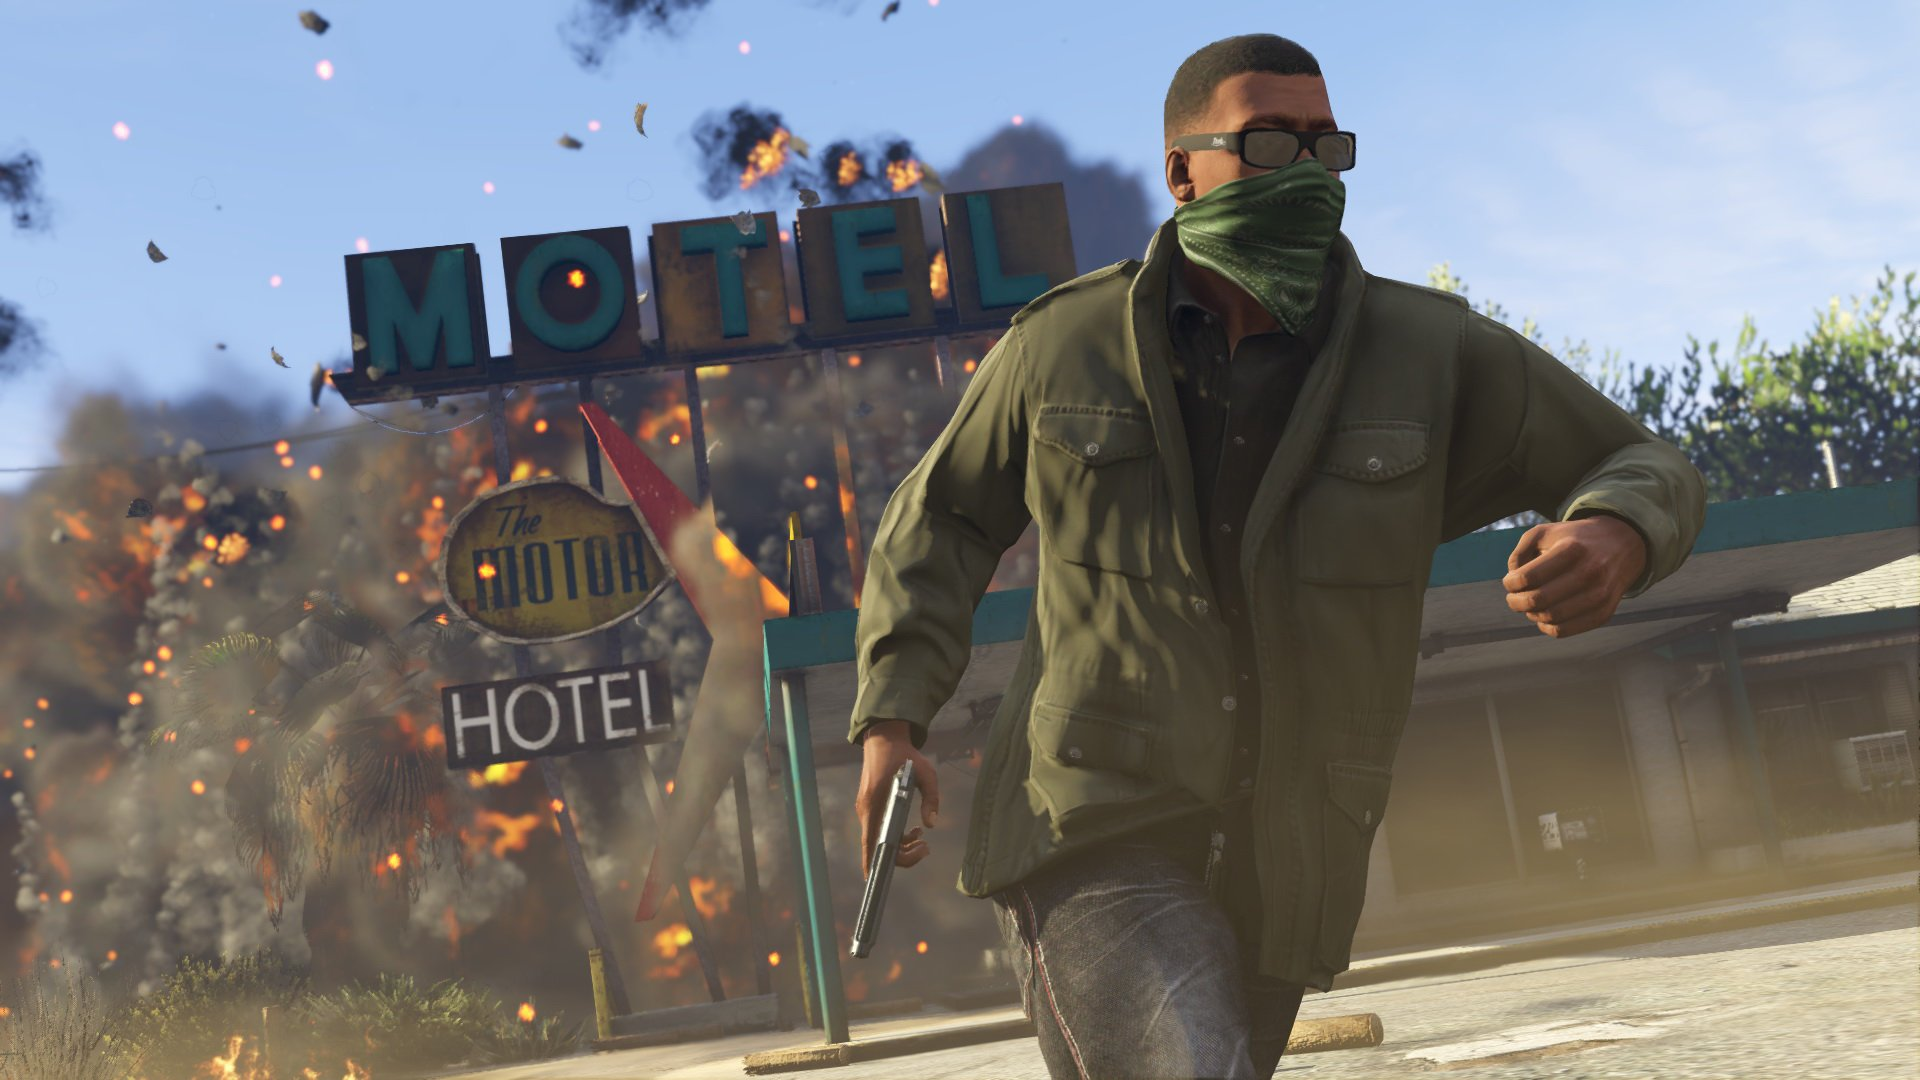 Rockstar owner discusses remasters strategy, says it's not interested in 'simple ports' - Video Games Chronicle